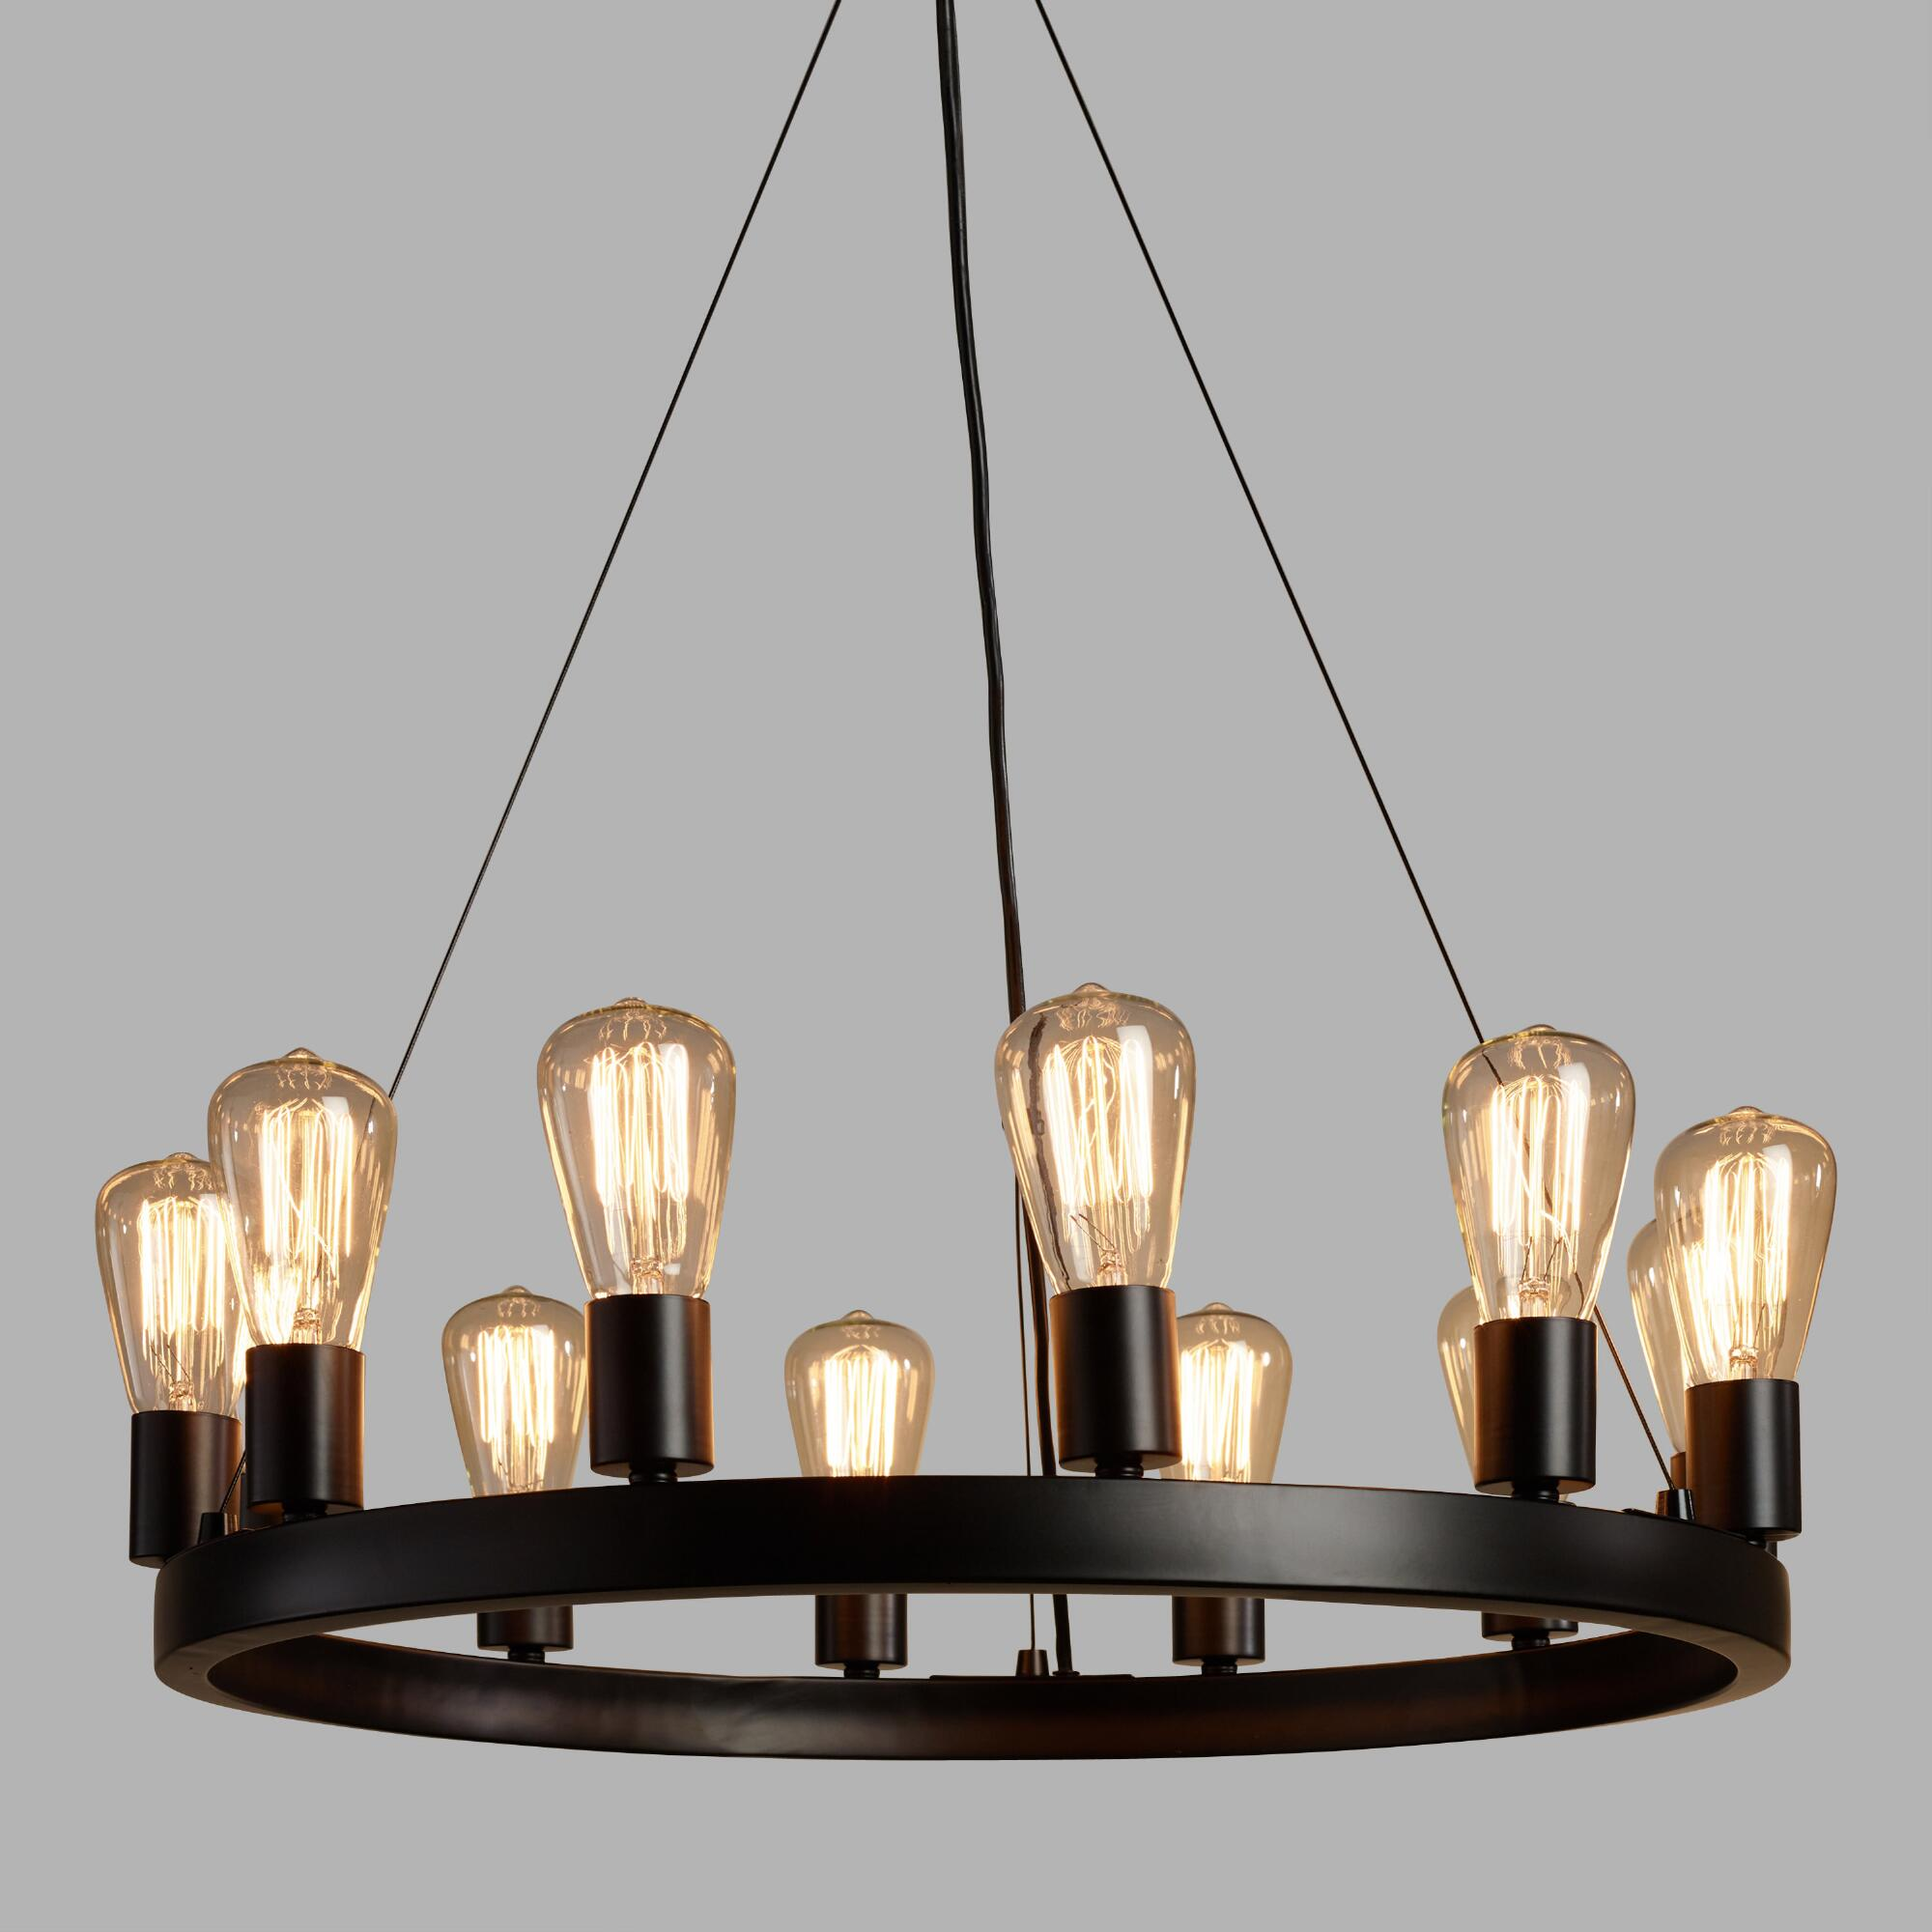 Round 12 light edison bulb chandelier world market aloadofball Gallery